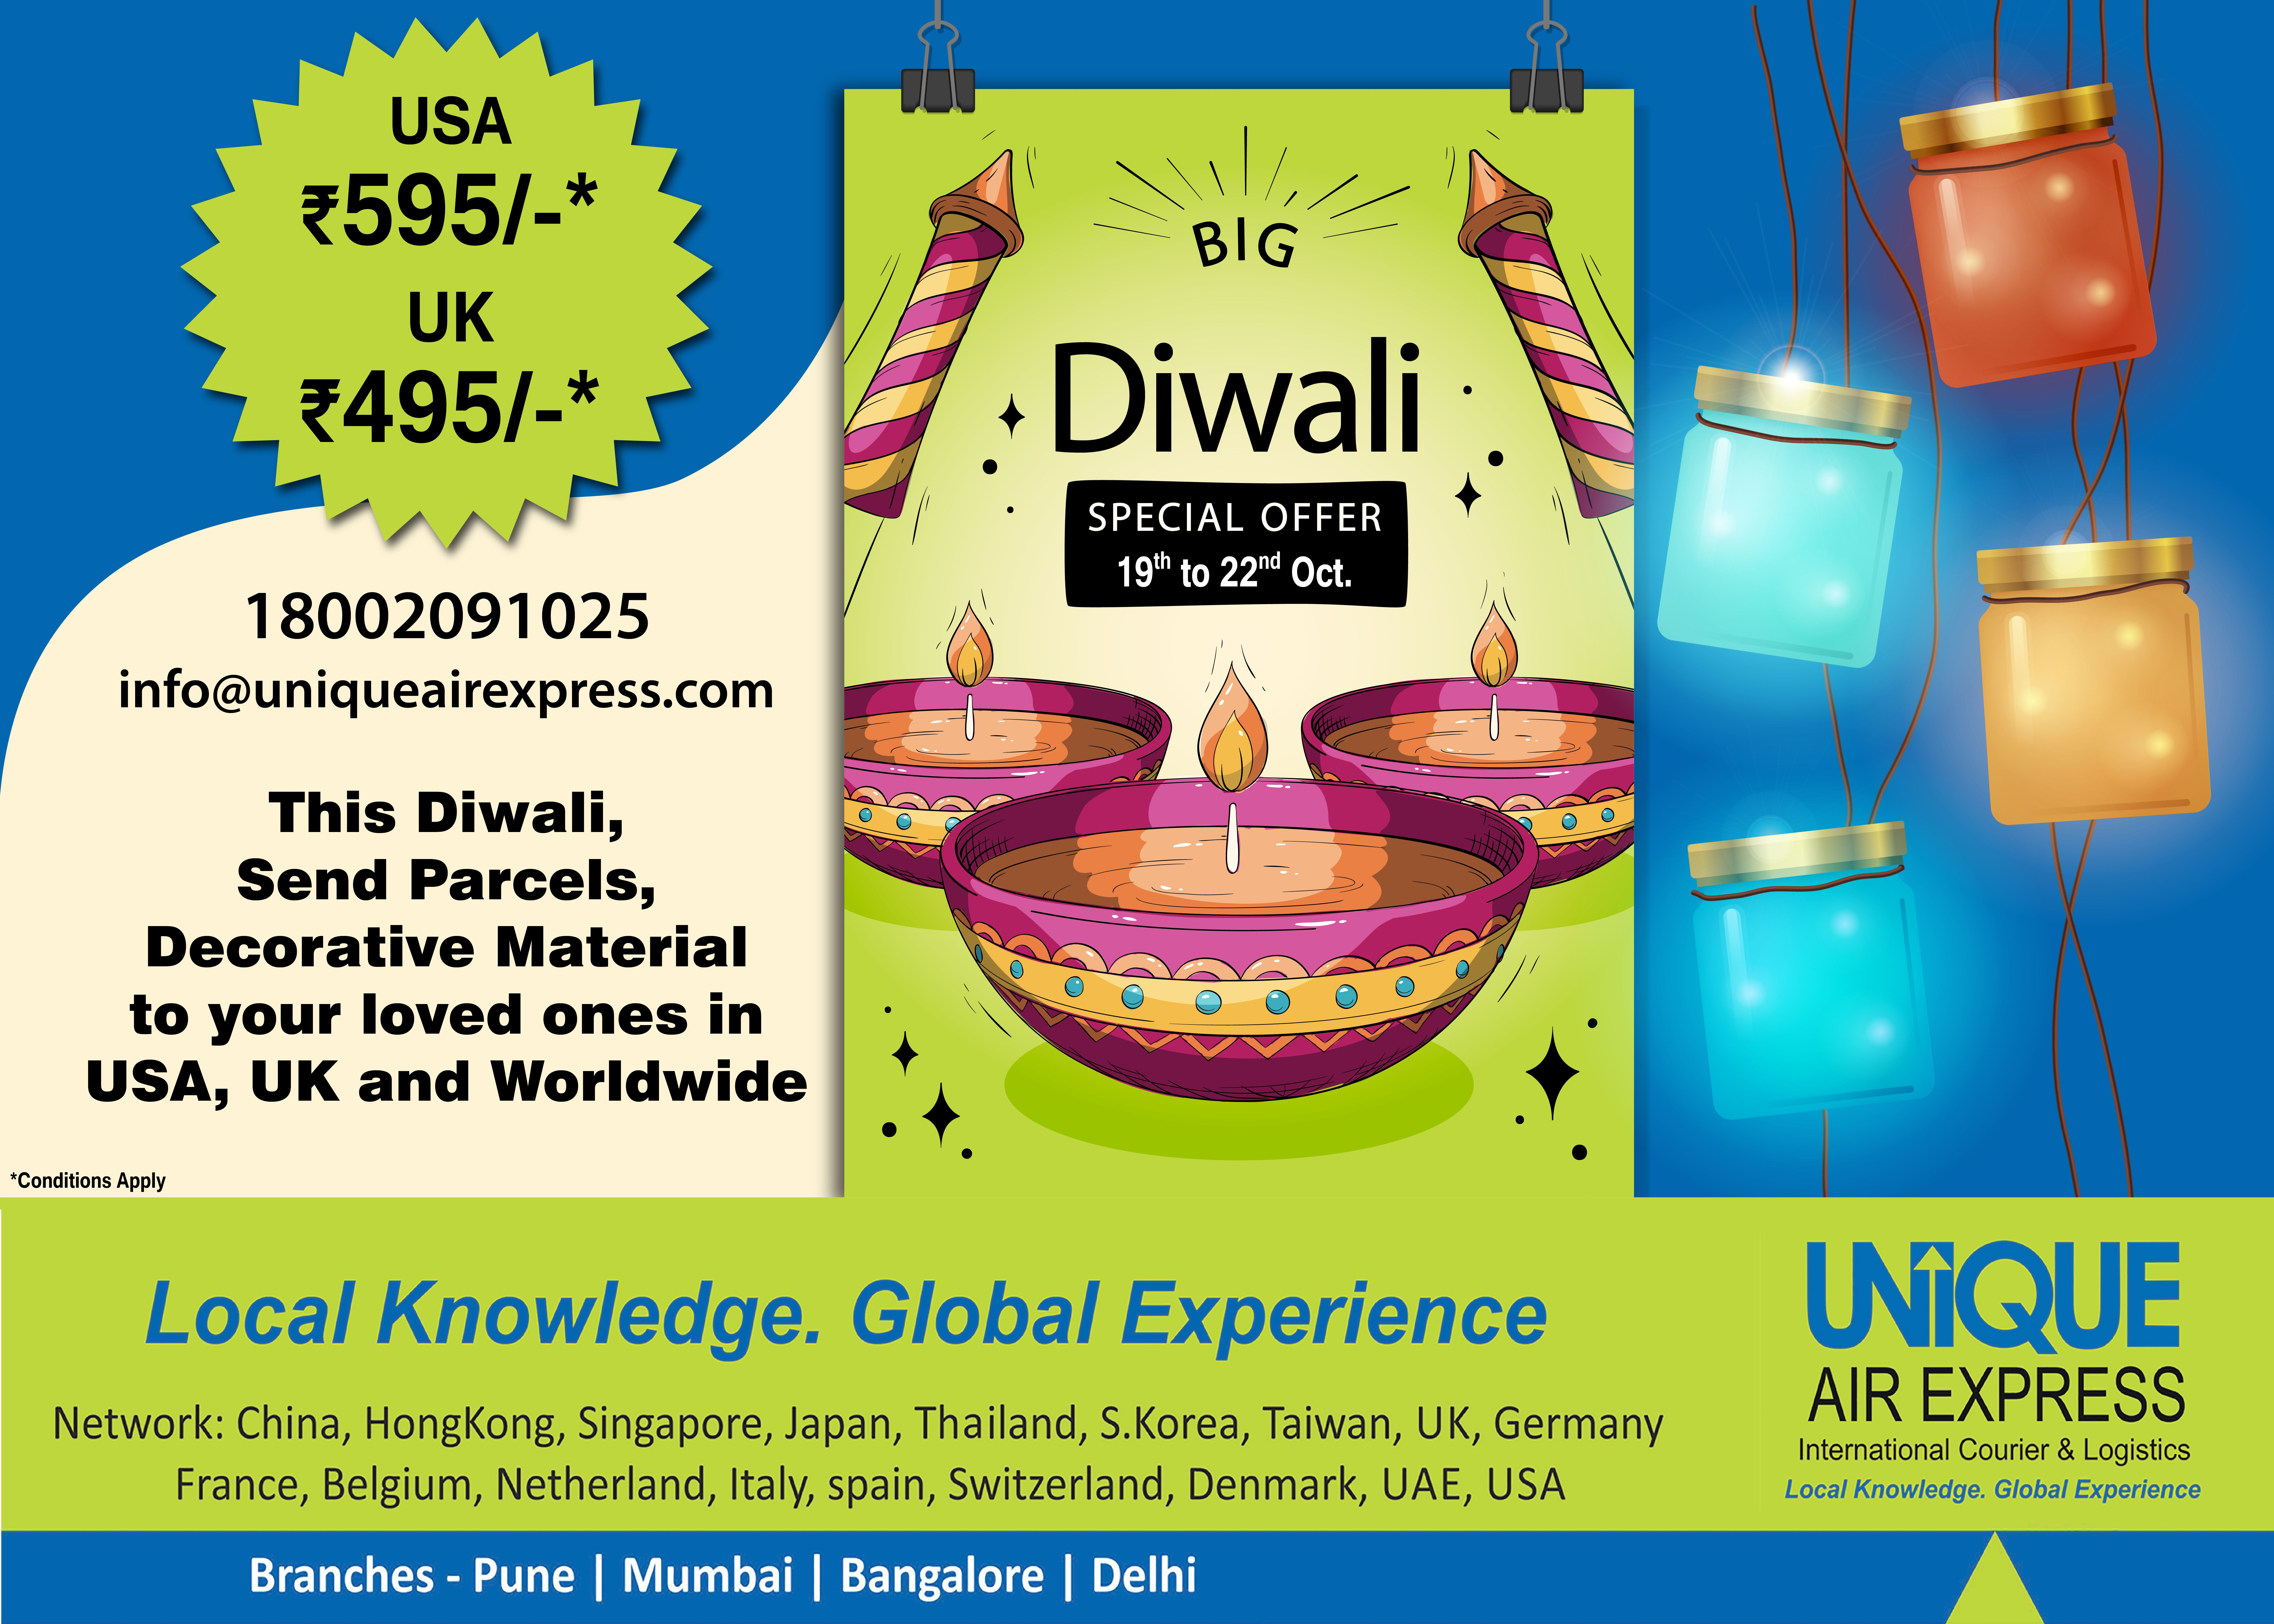 Now Send Diwali Faral Sweets, Gifts and Decorative